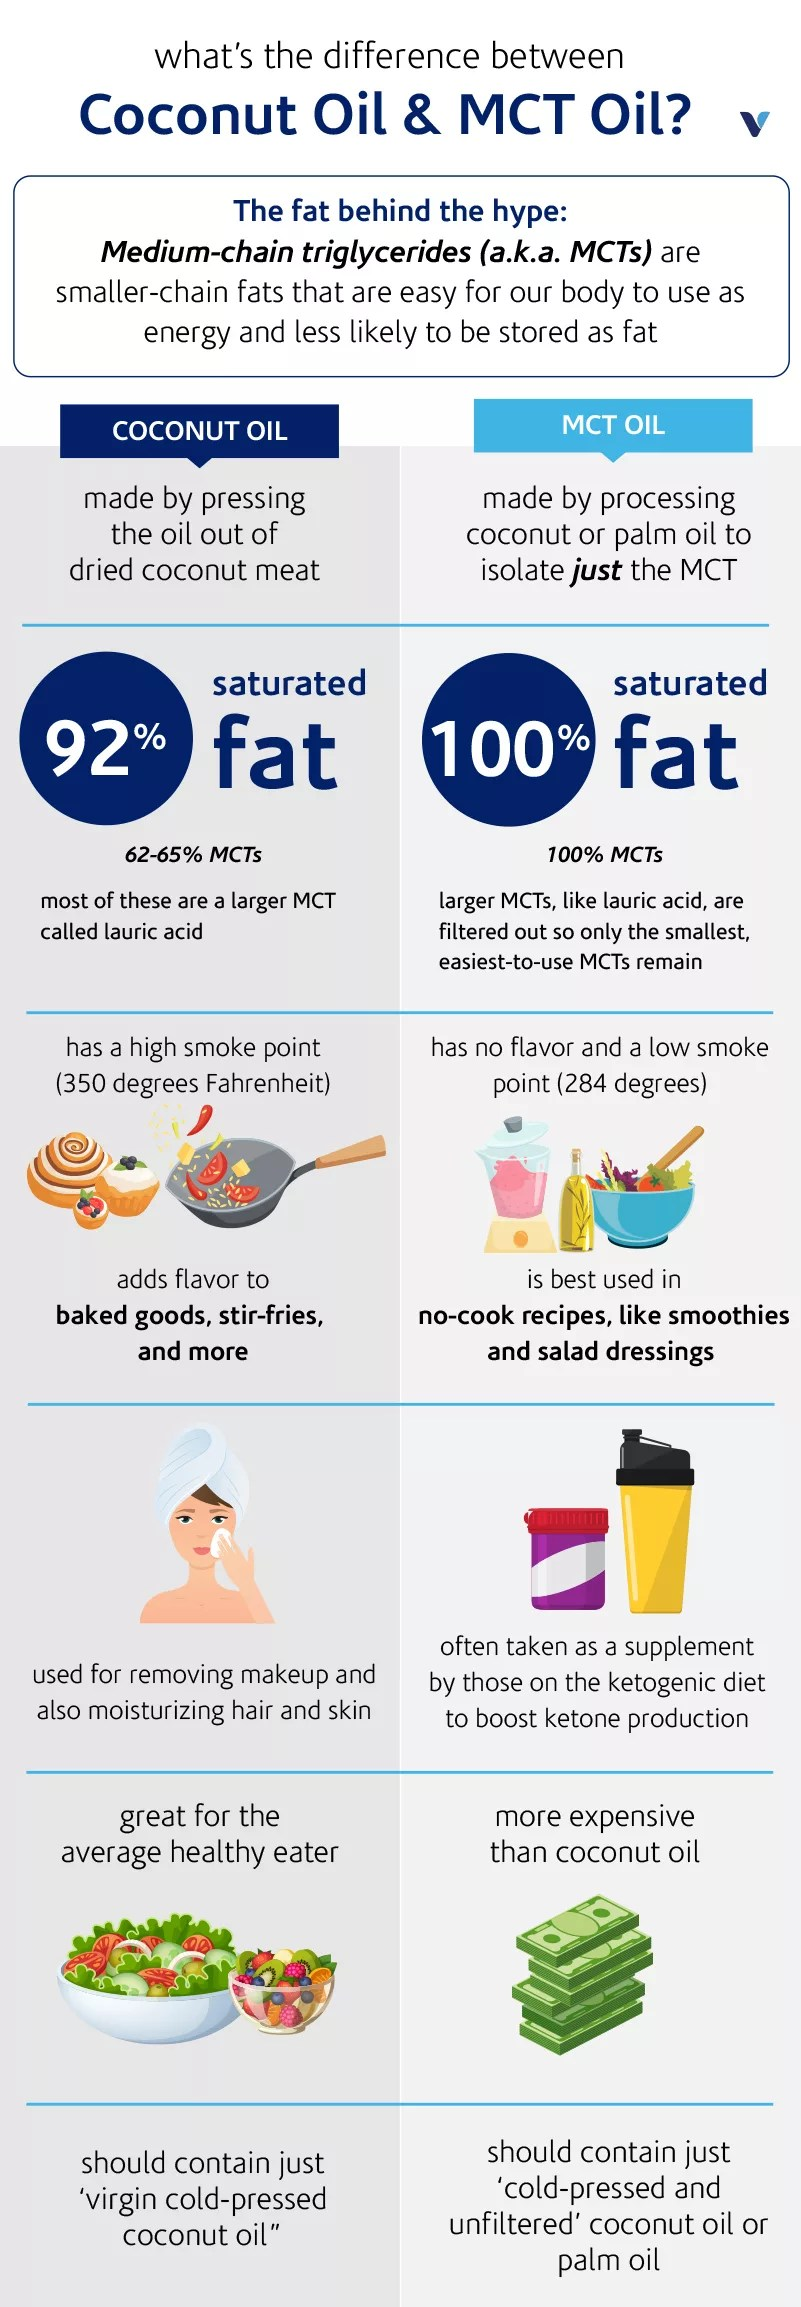 Mct Oil Weight Loss Before And After : weight, before, after, Difference, Between, Coconut, Oil—And, What's